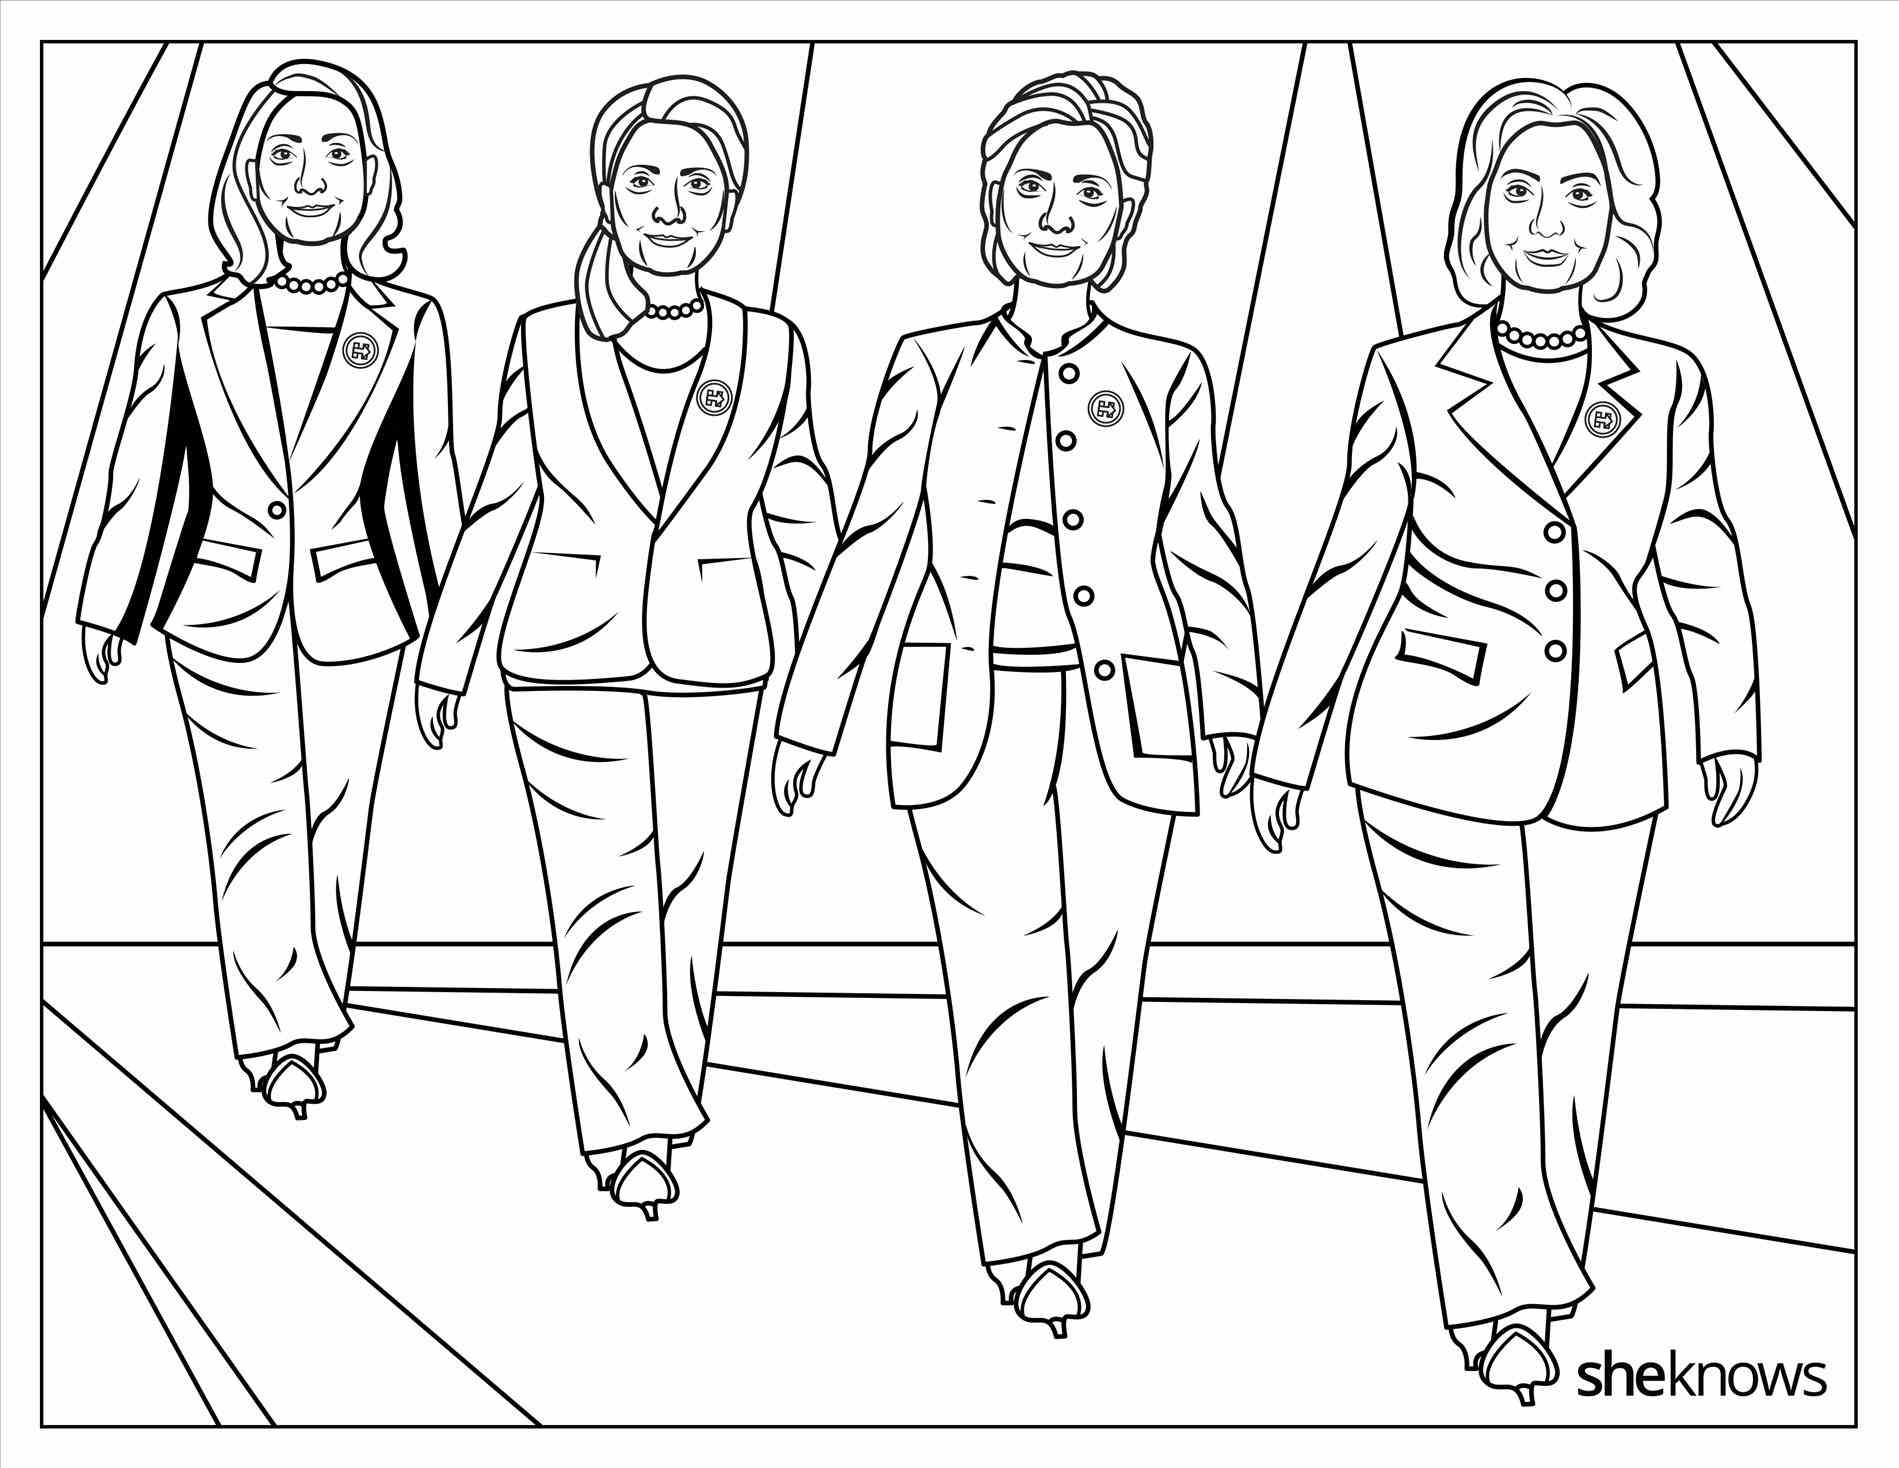 Enchanting Trump Coloring Pages Frieze Printable Coloring Pages Gallery Of Hillary Clinton Coloring Pages Collection to Print